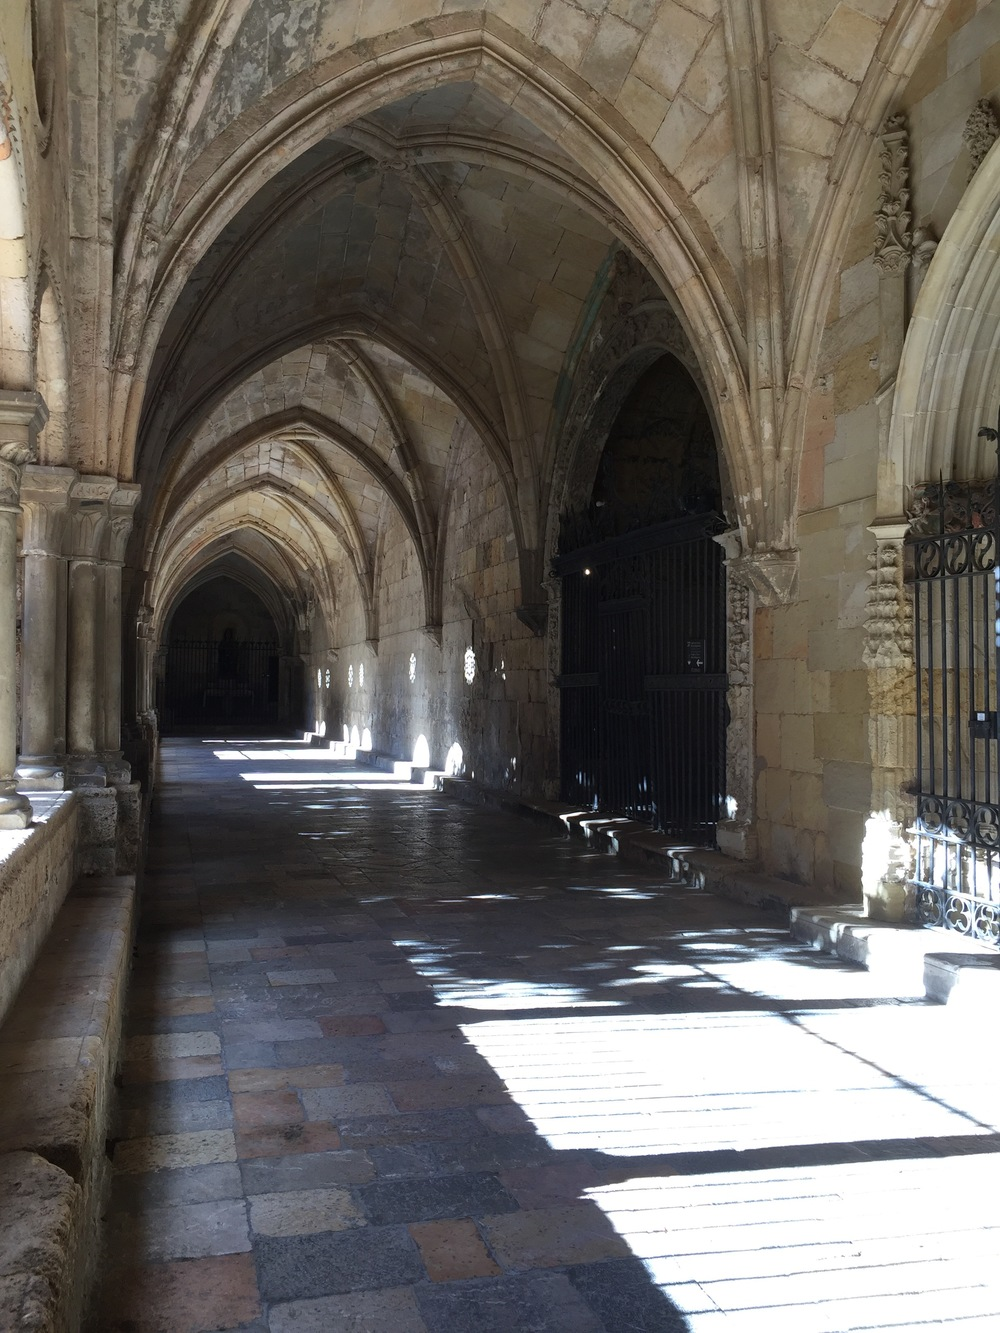 Tarragona-Cathedral-photos-Catholic-Curiosities-esoteric-jessewaugh.com-53.jpg